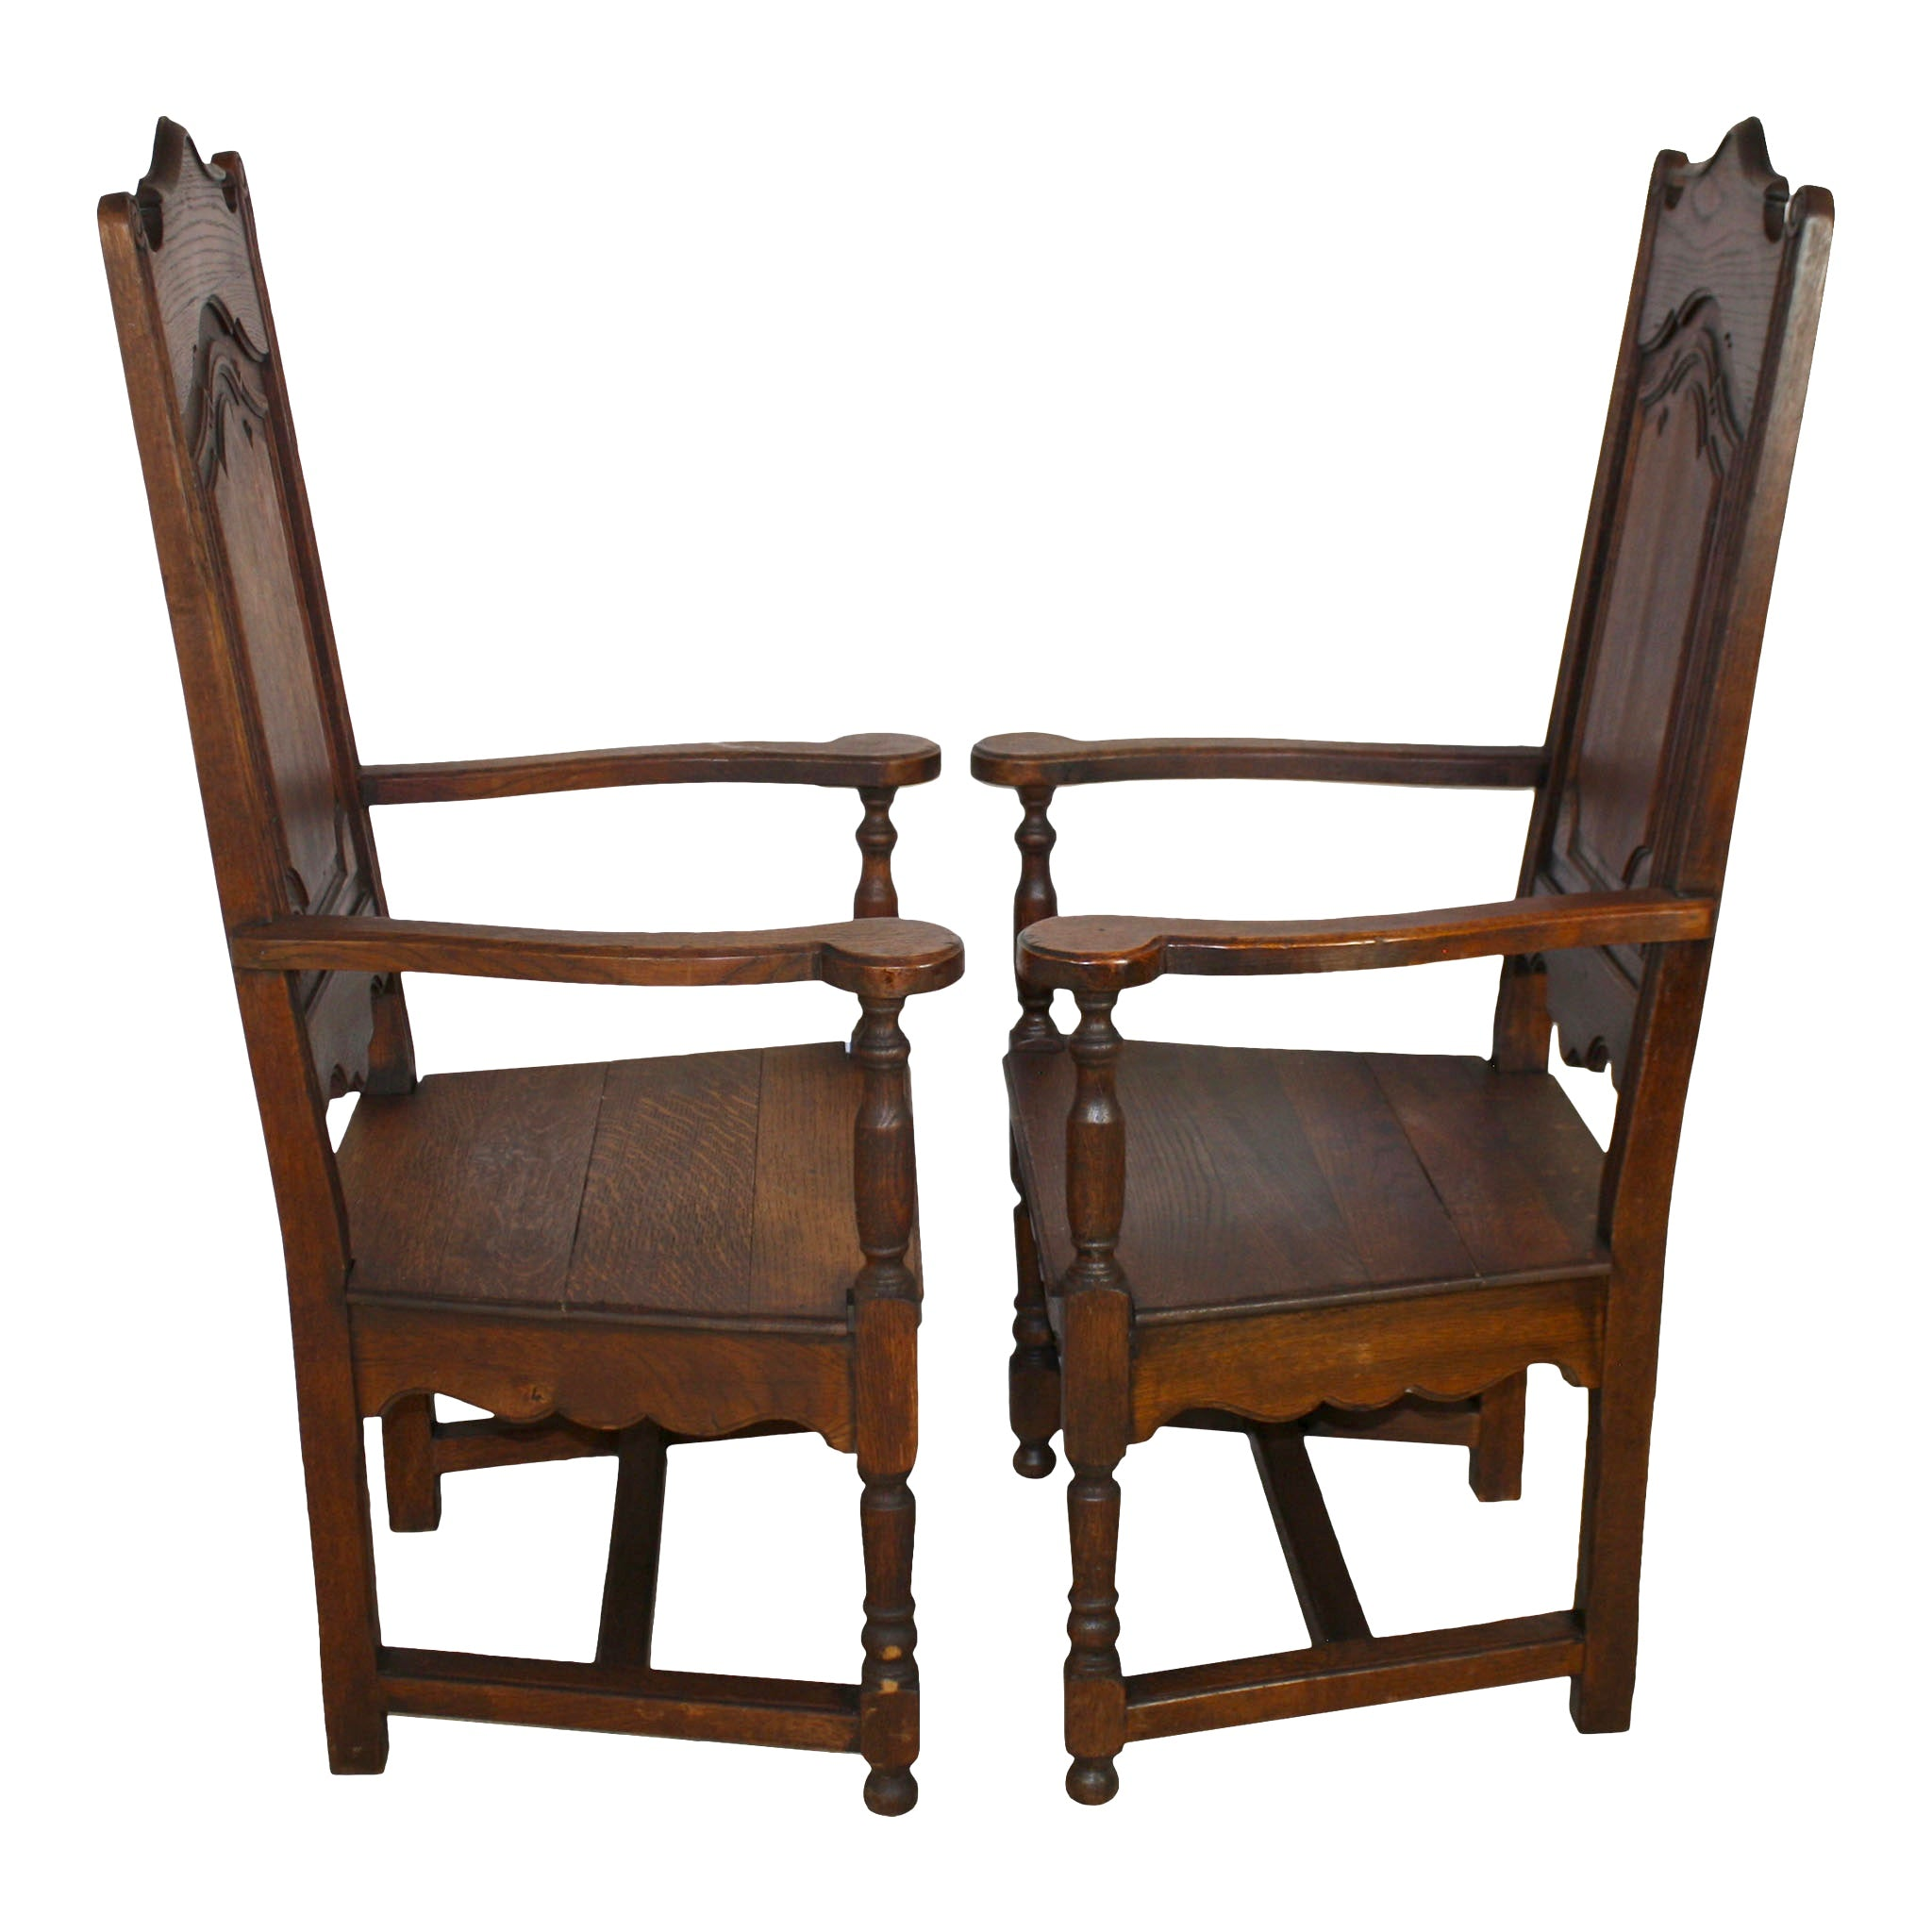 High Back Farm Chairs Set of Two